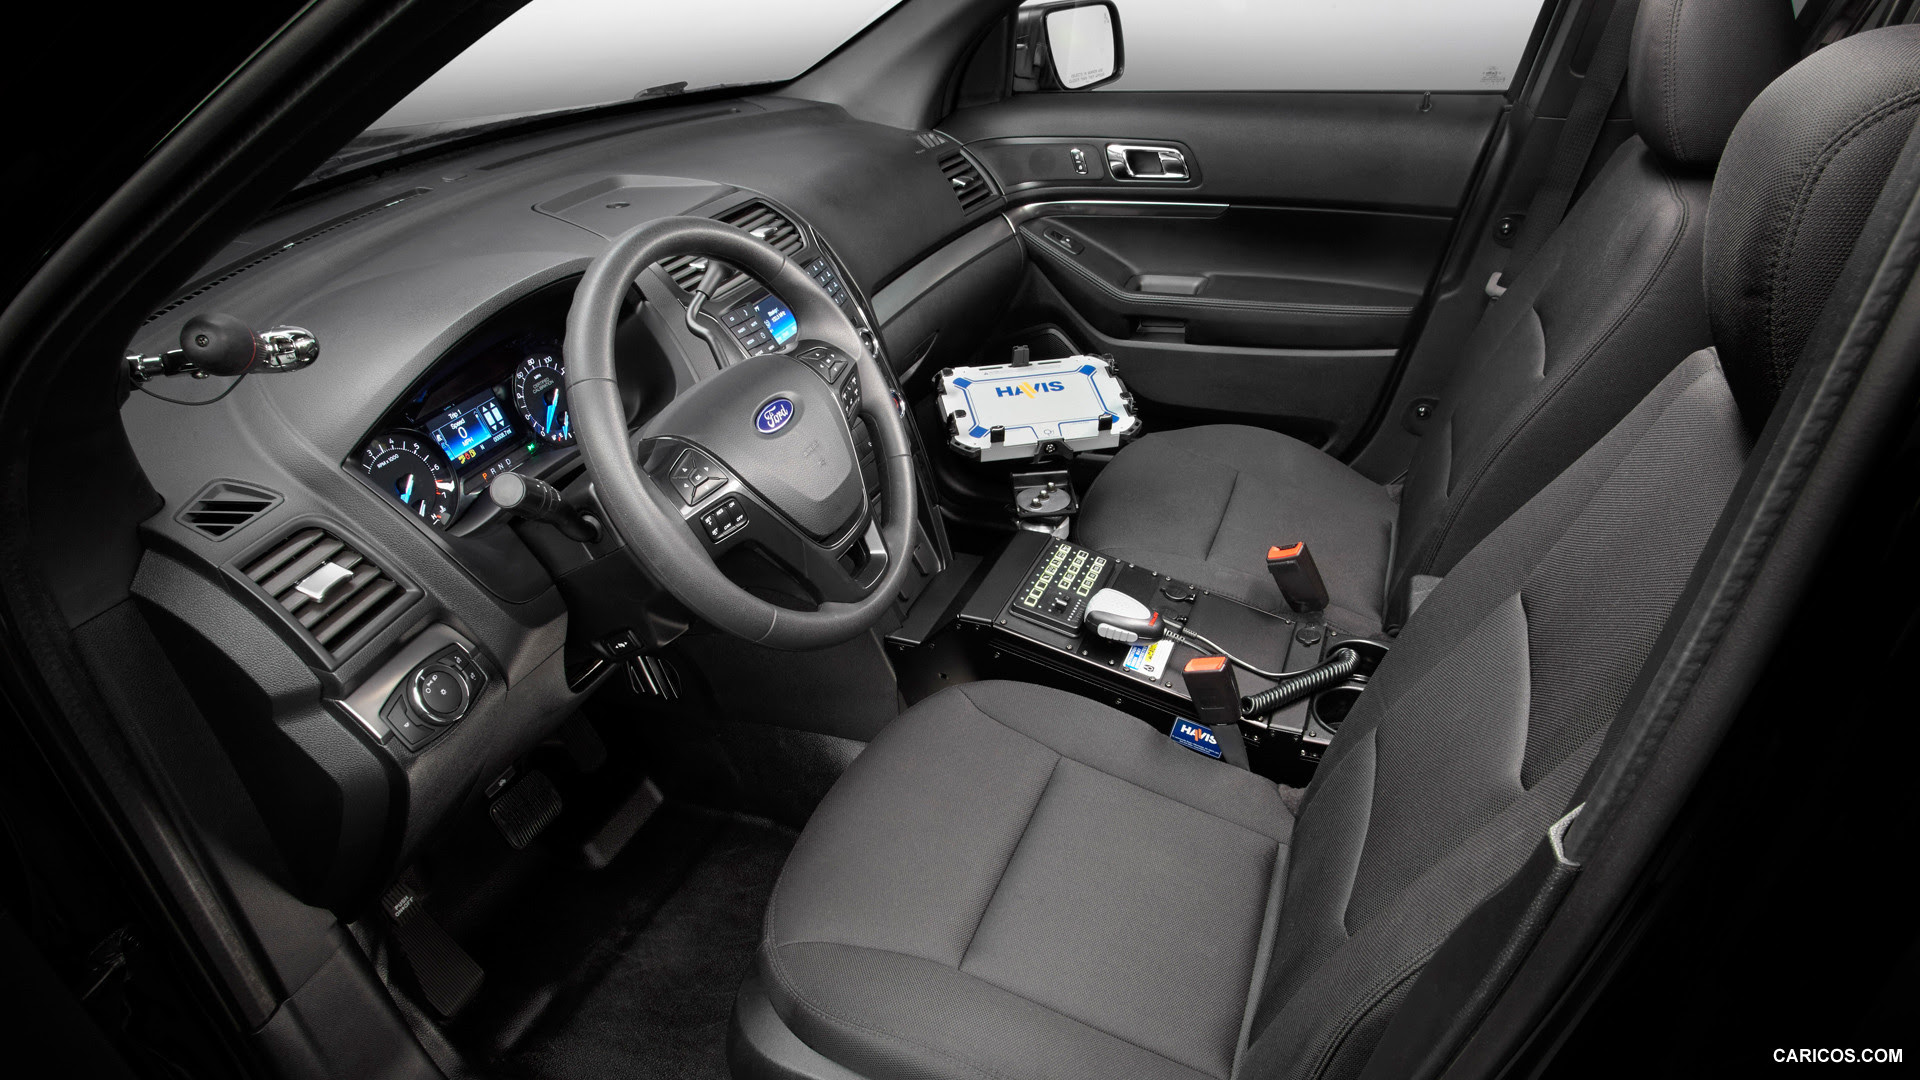 2016 Ford Police Interceptor Utility - Interior | HD Wallpaper #23